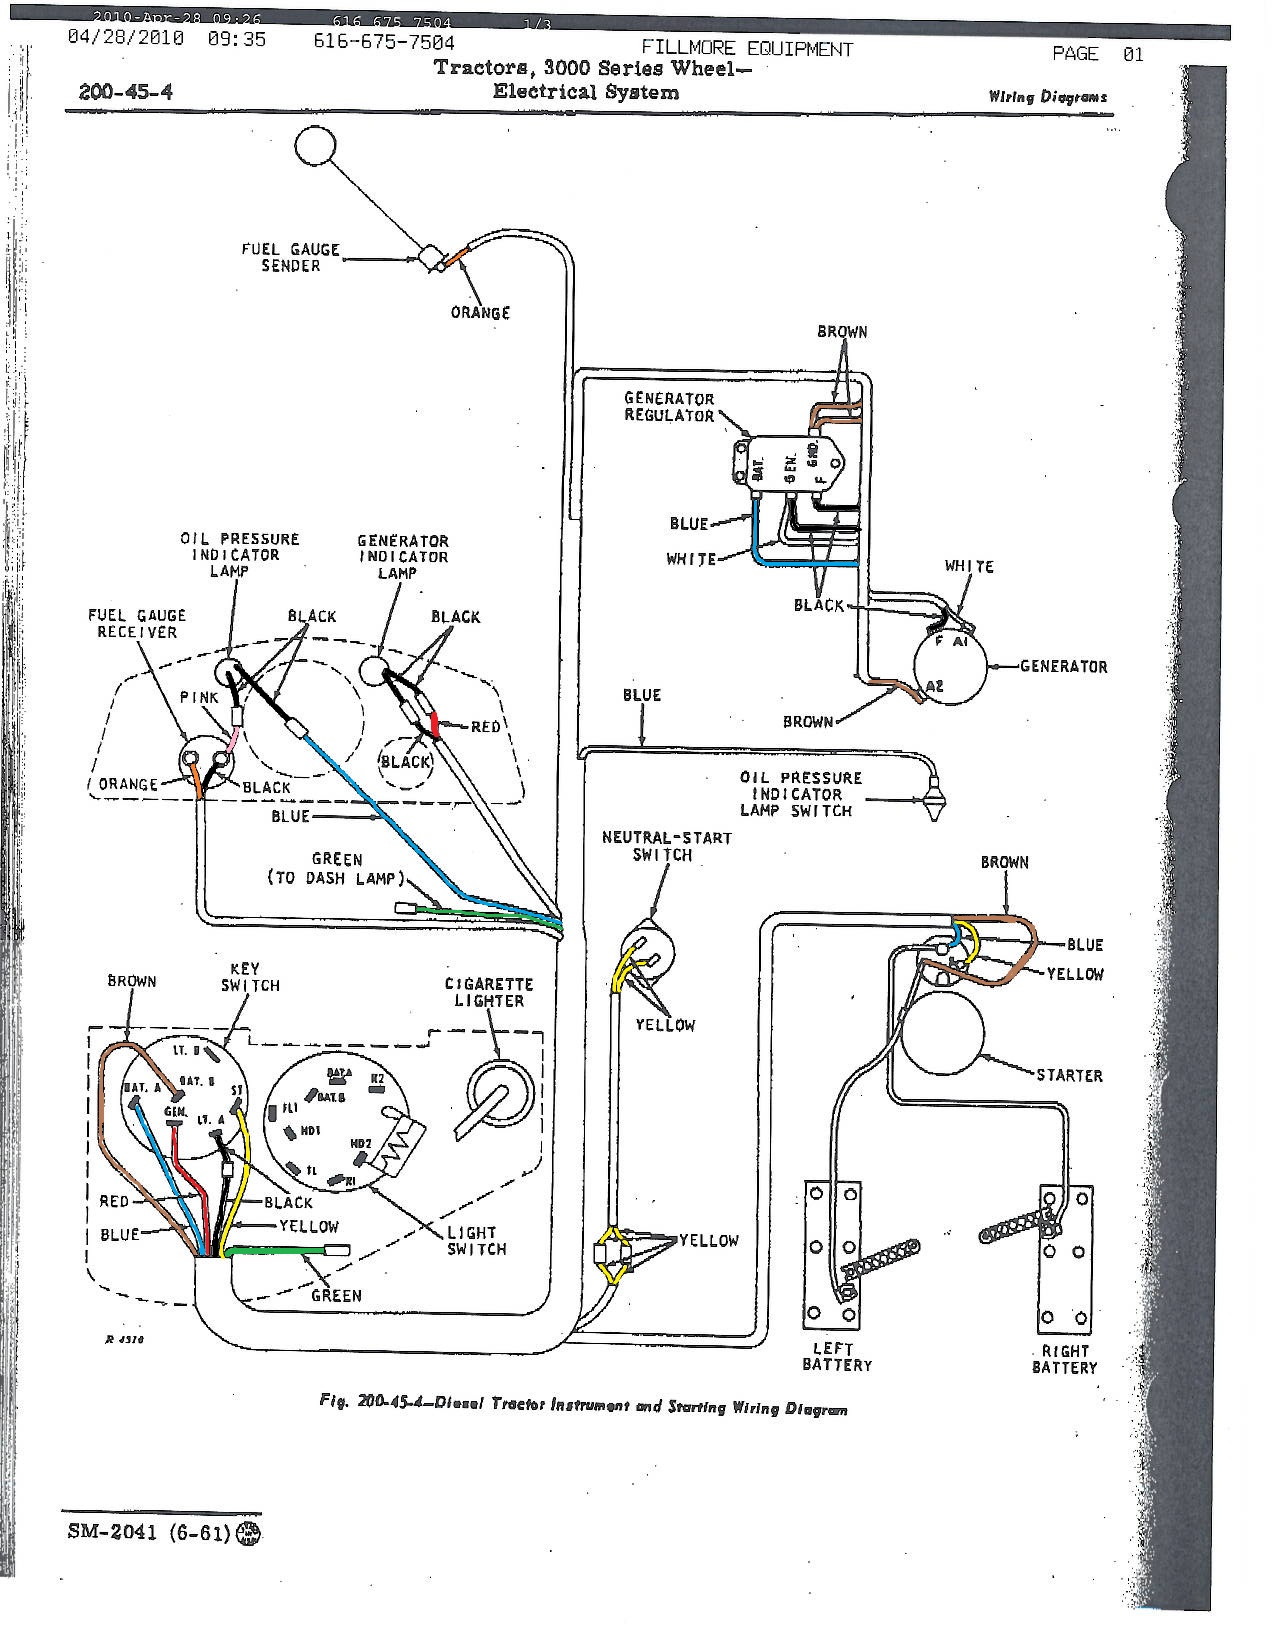 rotork wiring diagram rotork image wiring diagram lincoln compact 185 wiring diagram lincoln printable wiring on rotork wiring diagram 200